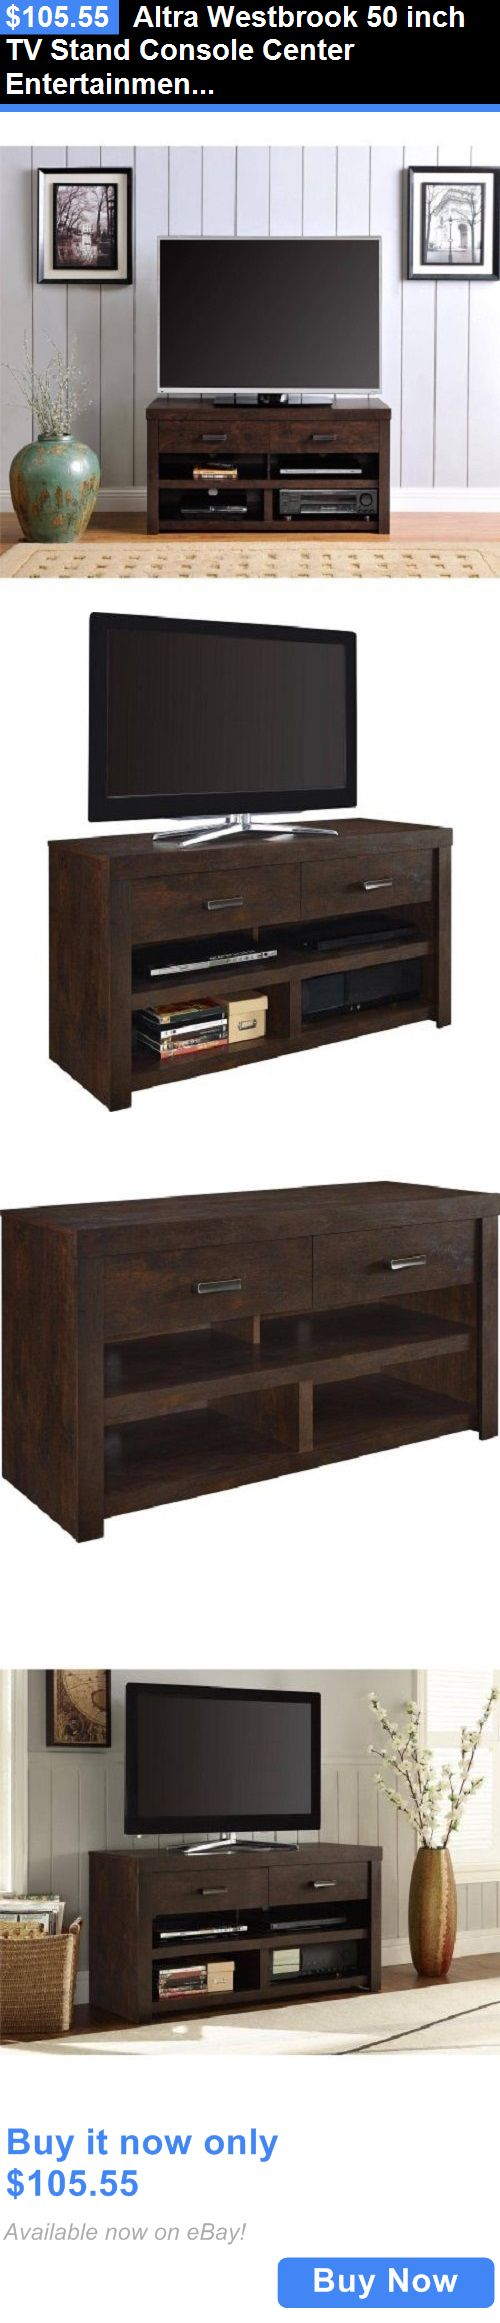 units tv stands altra westbrook 50 inch tv stand console center furniture home - 50in Tv